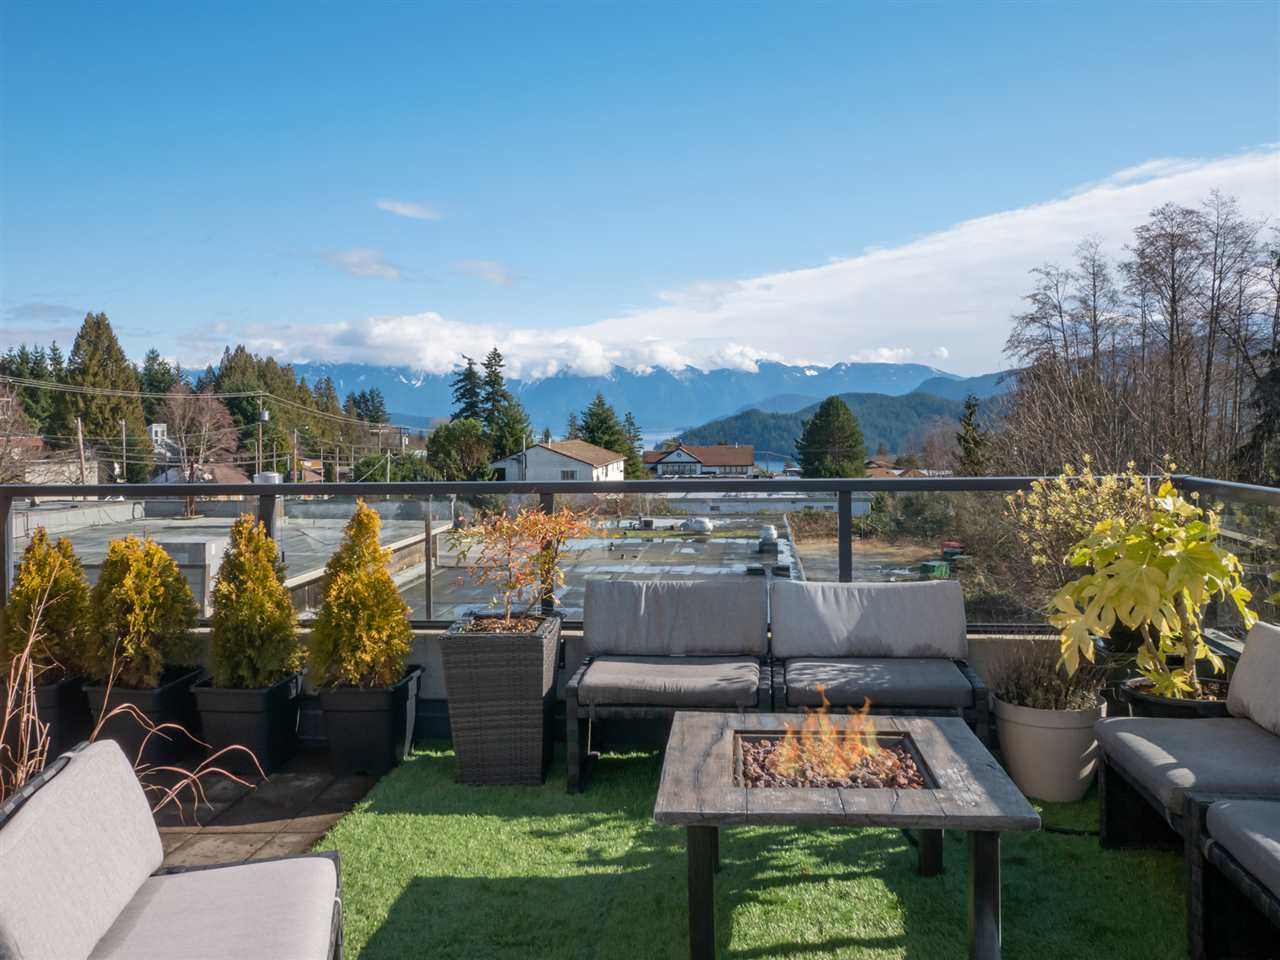 210 875 GIBSONS WAY - Gibsons & Area Apartment/Condo for sale, 2 Bedrooms (R2542139) - #27